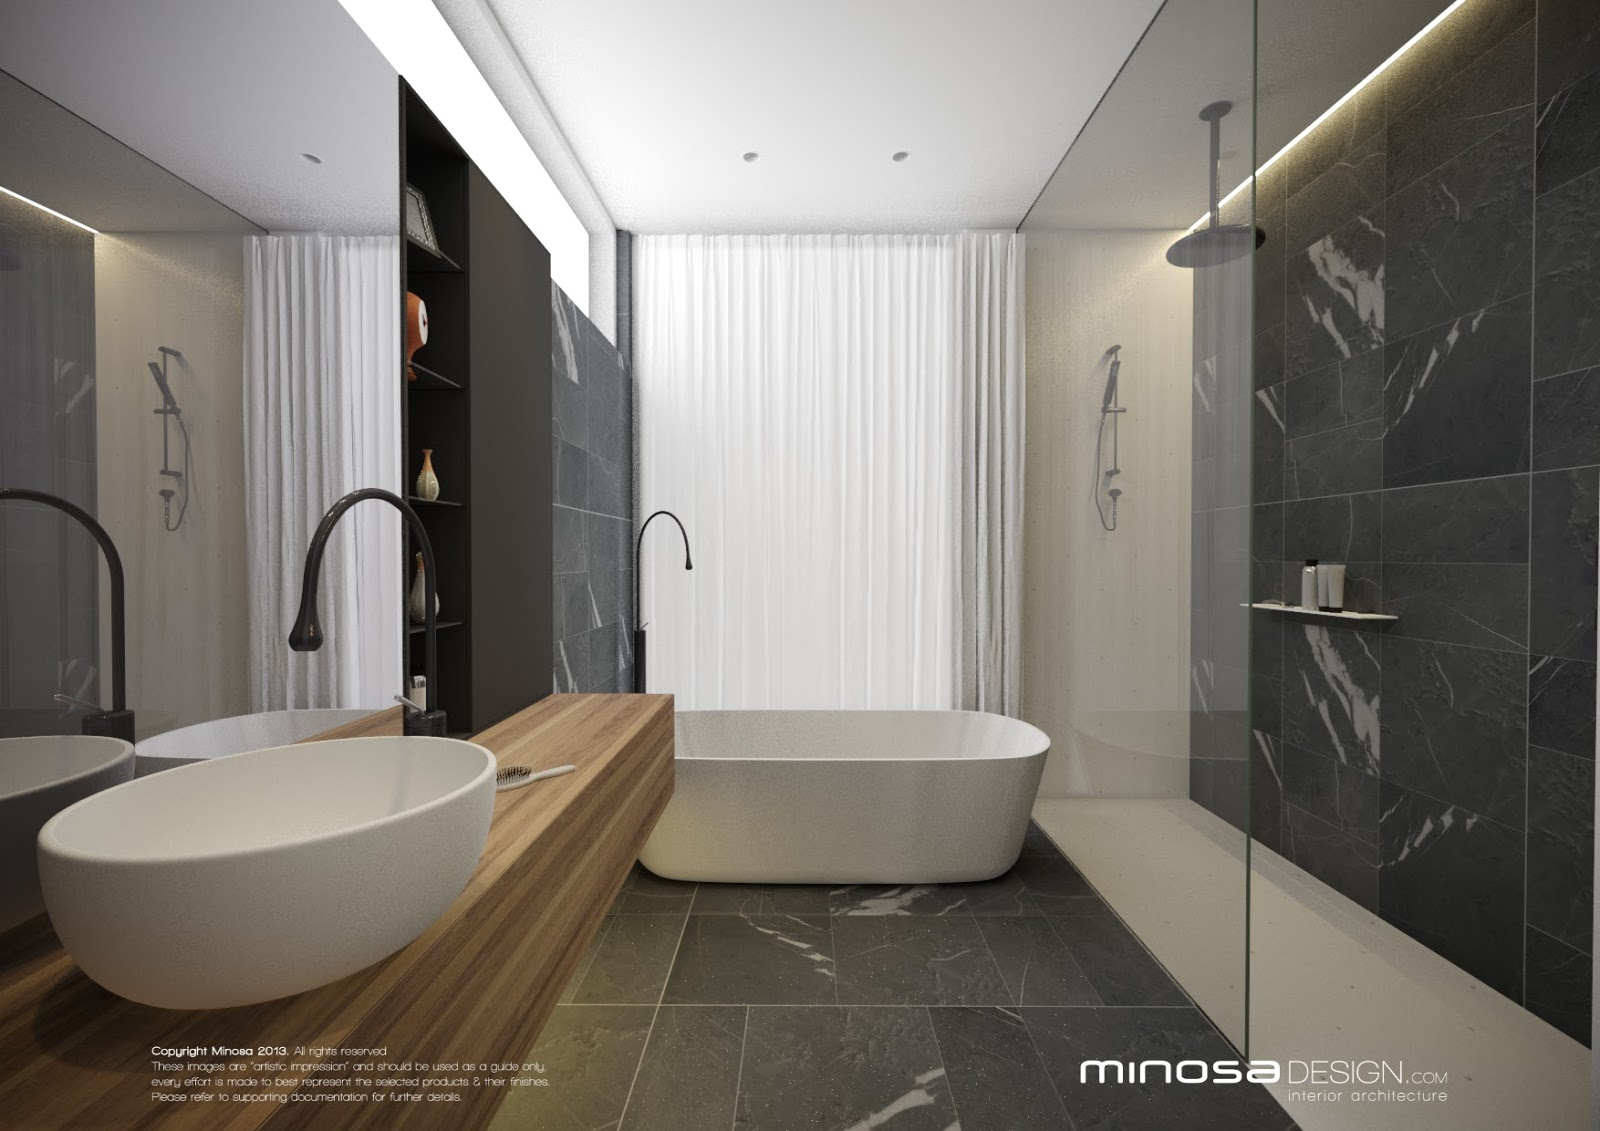 Minosa modern bathroom design to share for Bathroom design ideas photos